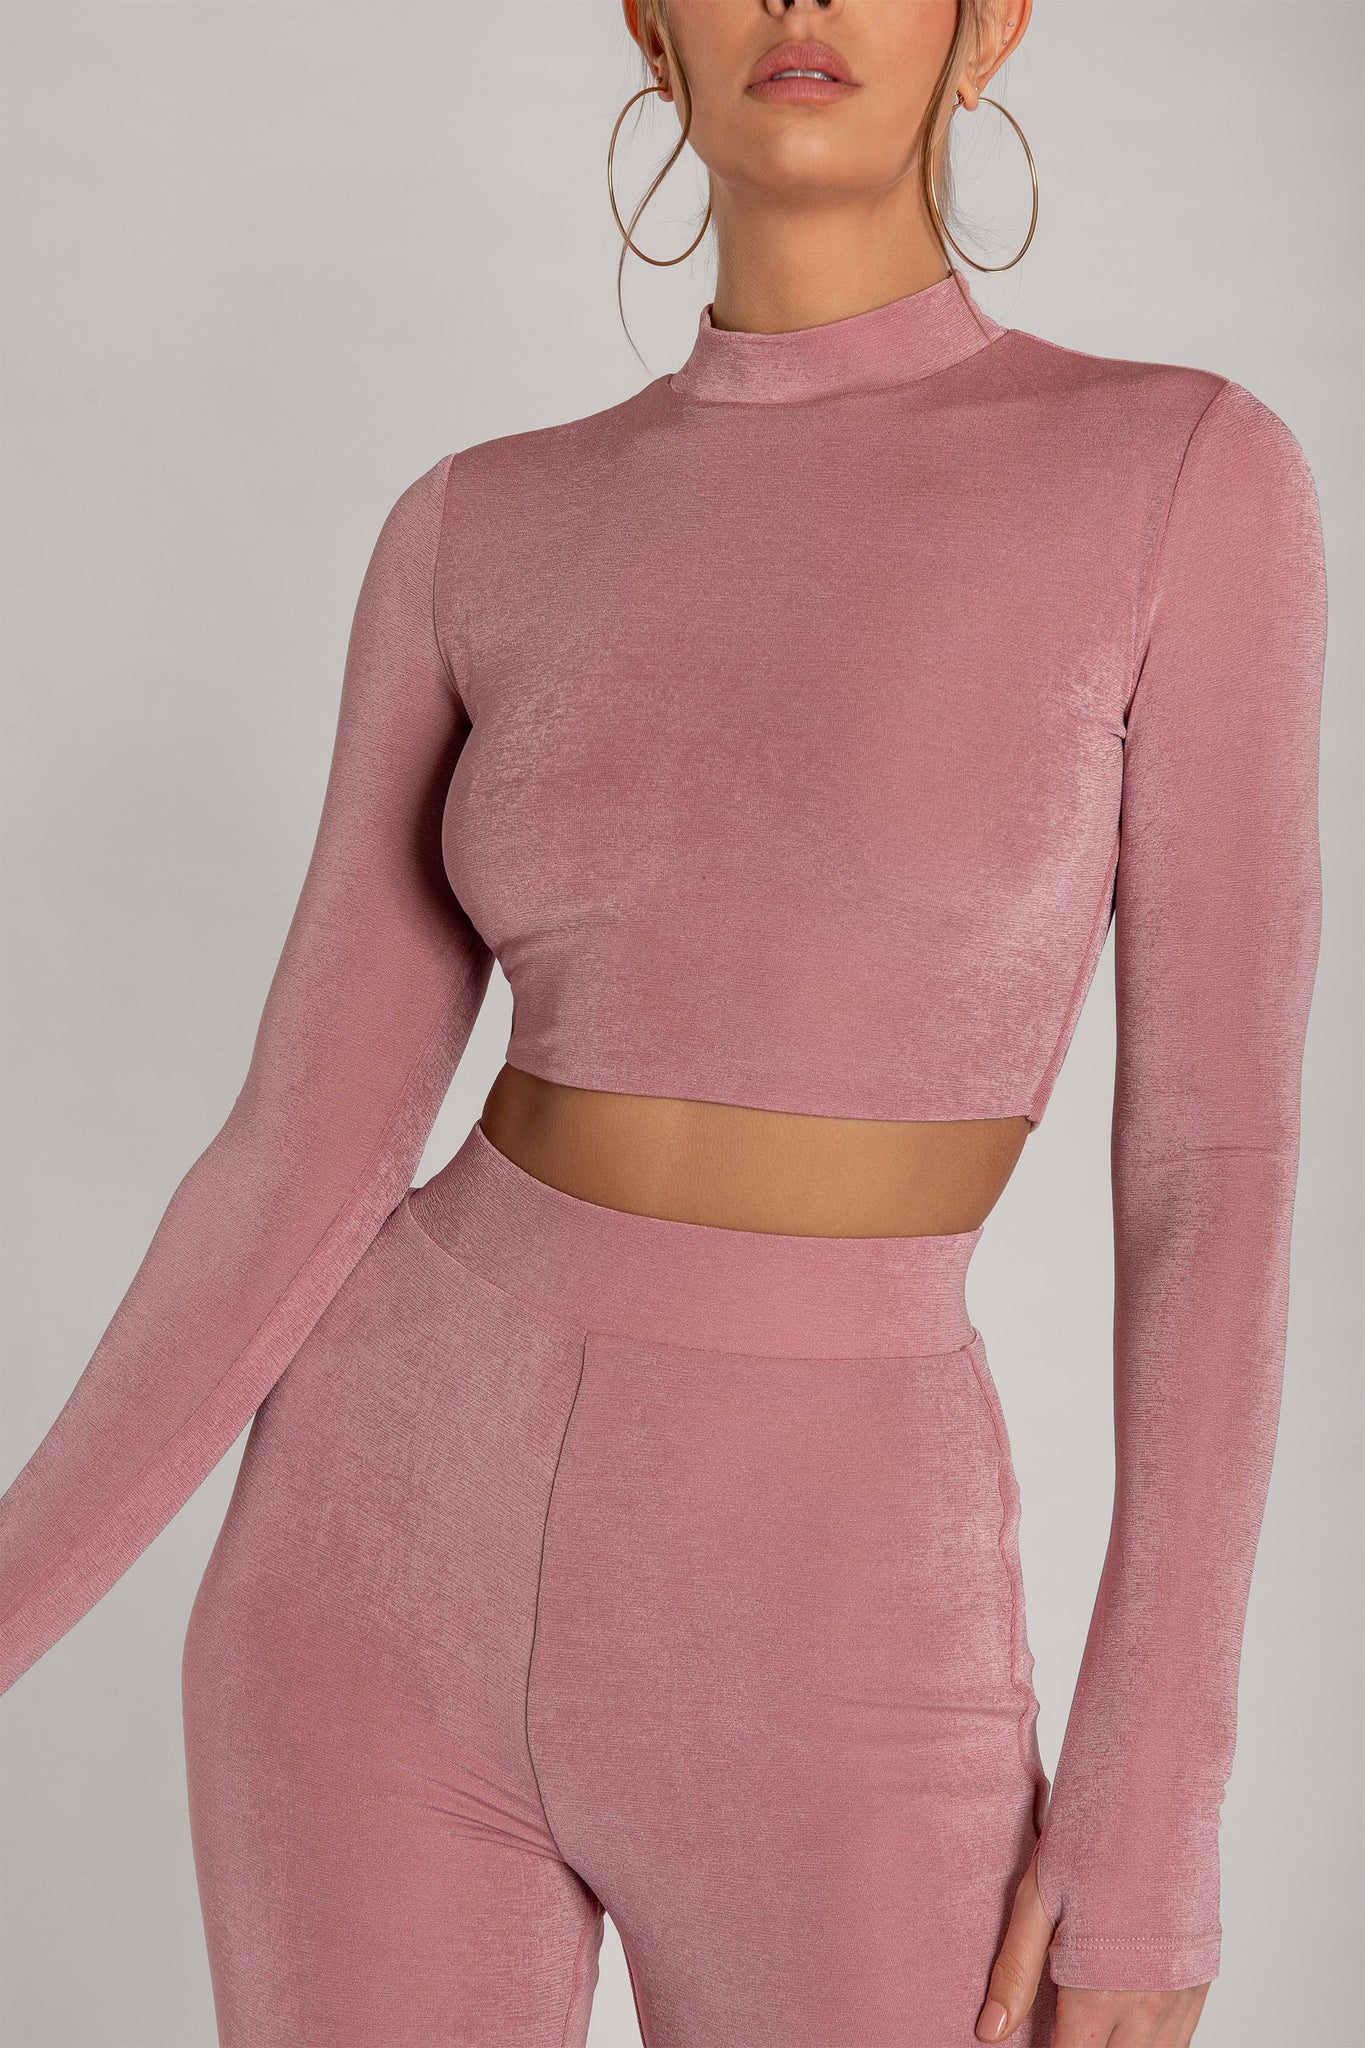 Georgina Luxe Jersey High Neck Long Sleeve Crop Top - Pink - MESHKI